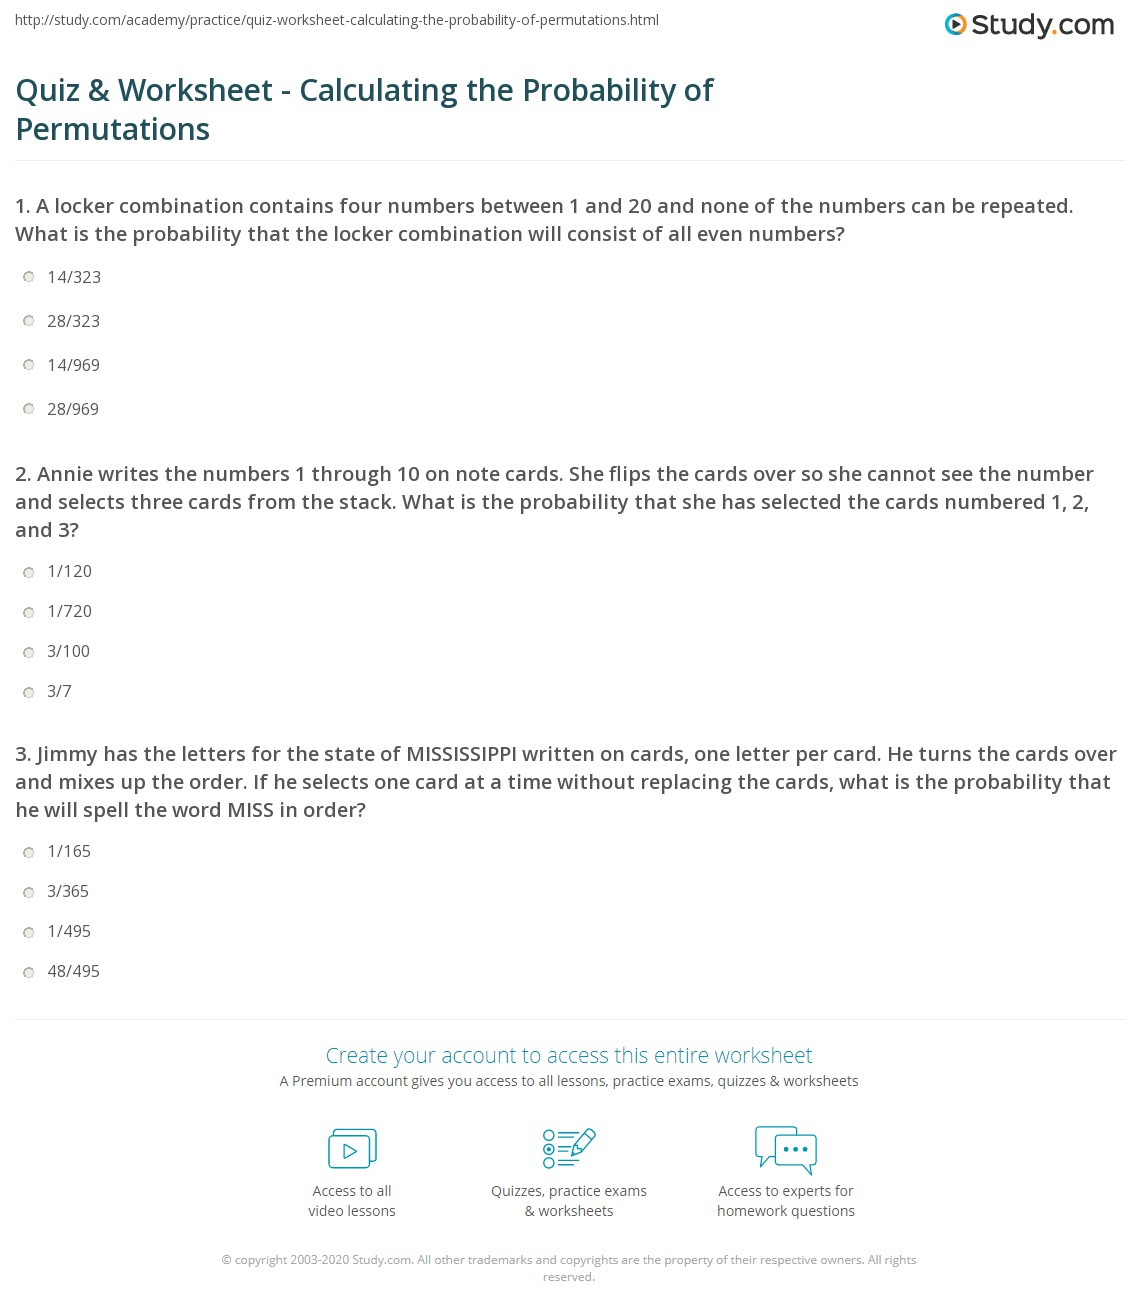 Quiz & Worksheet - Calculating the Probability of Permutations ...